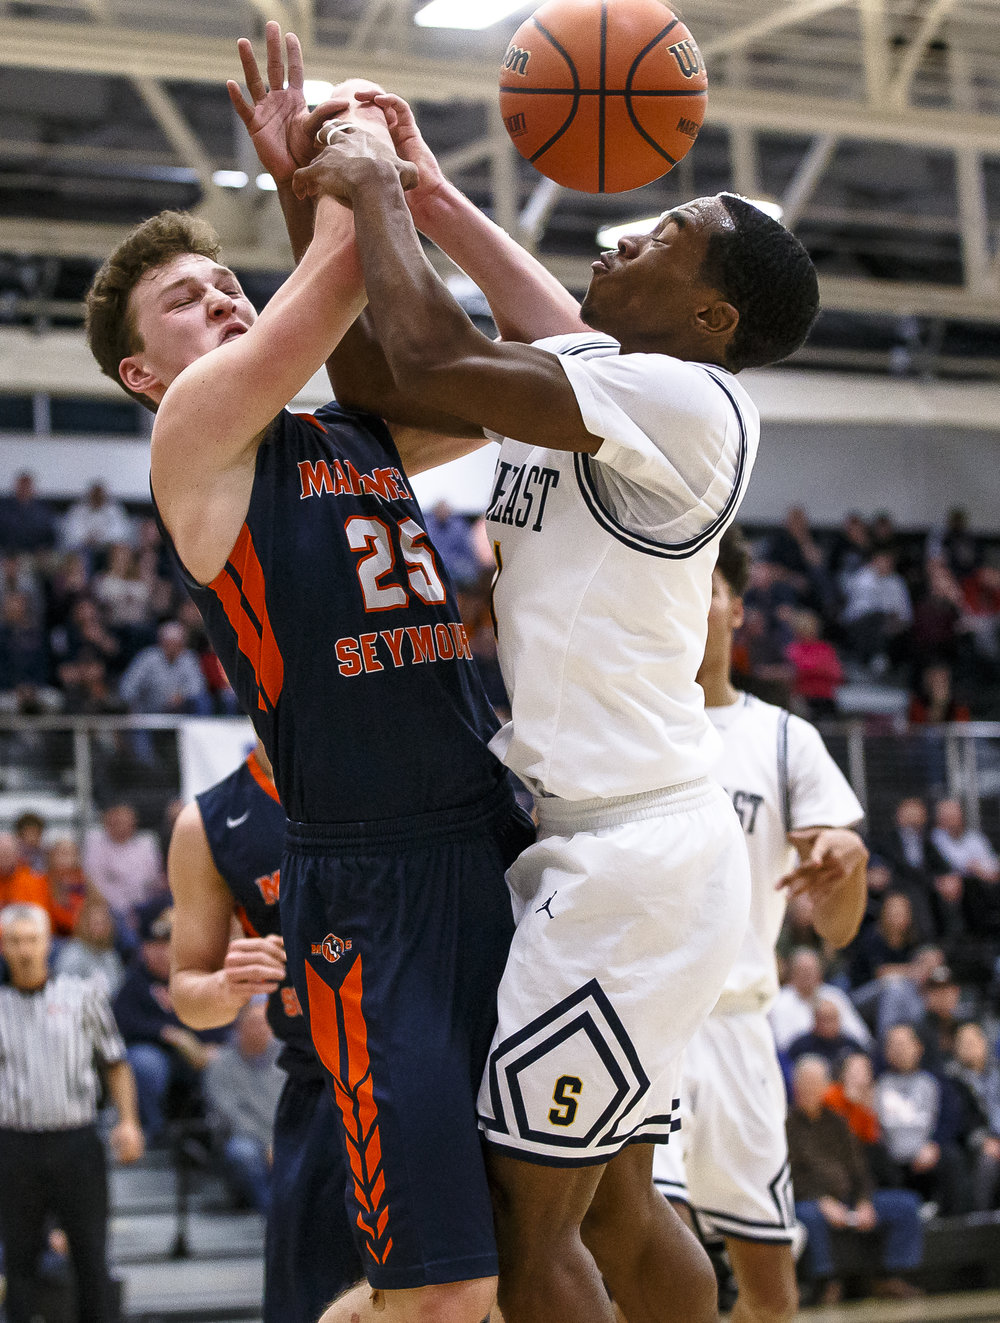 Southeast's Kobe Medley (11) and Mahomet-Seymour's Holt Campion (25) collide as they go for a rebound in the second half during the Class 3A Decatur Eisenhower Sectional semifinals at Eisenhower High School, Wednesday, March 7, 2018, in Decatur, Ill. [Justin L. Fowler/The State Journal-Register]